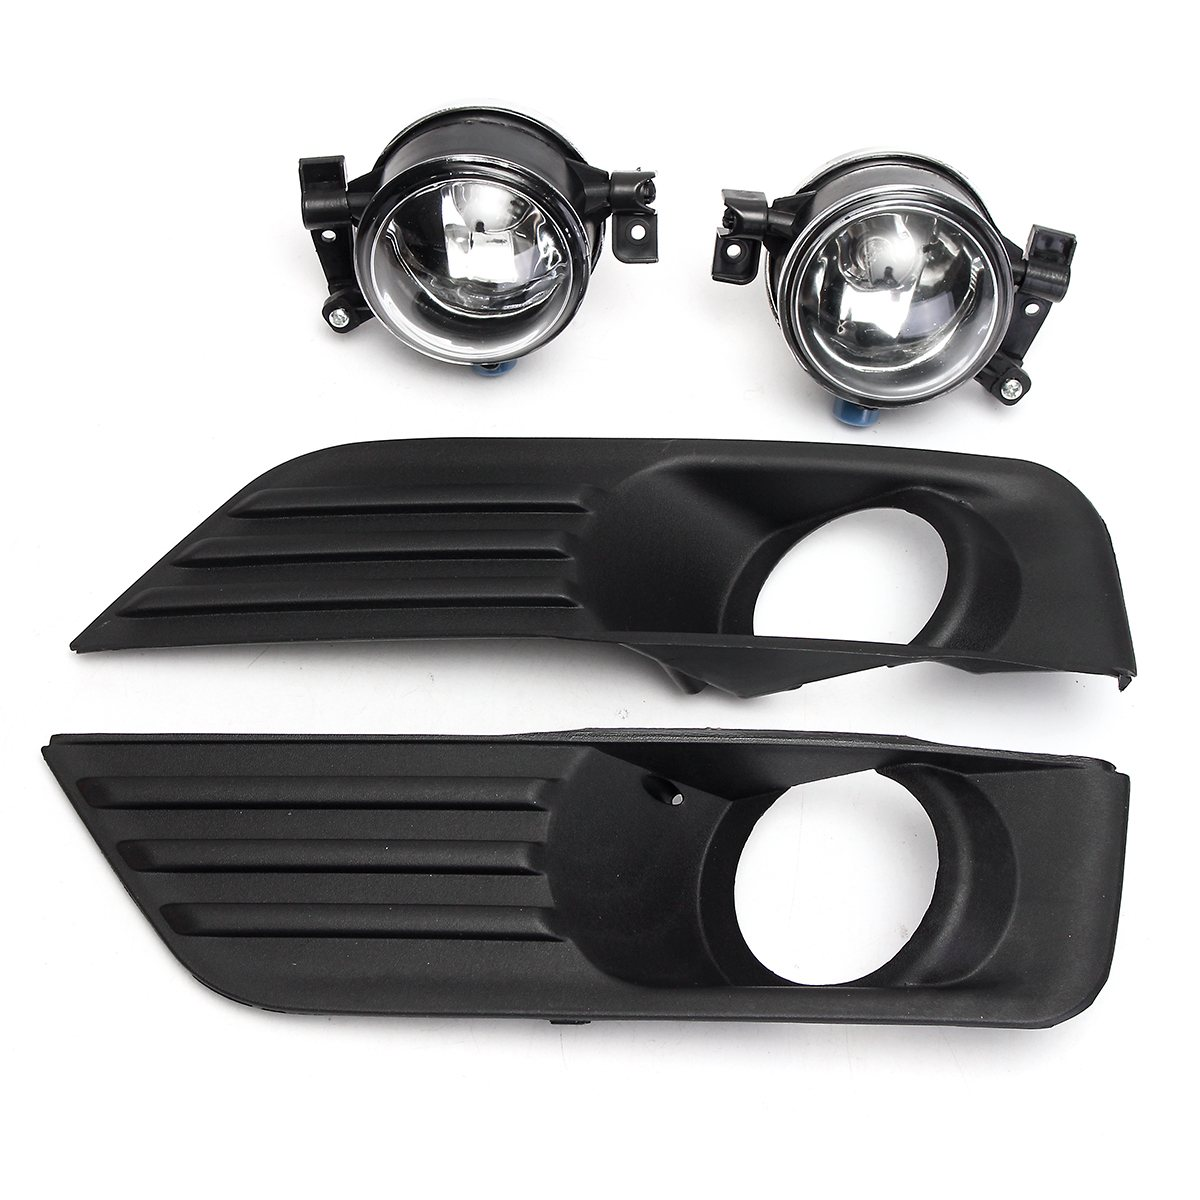 2Pcs Car Front Fog Lights Lamp Assembly Bumper Cover Grille Kit car fog Light For Ford/Focus 2005-2007 ownsun innovative super cob fog light angel eye bumper cover for skoda fabia scout